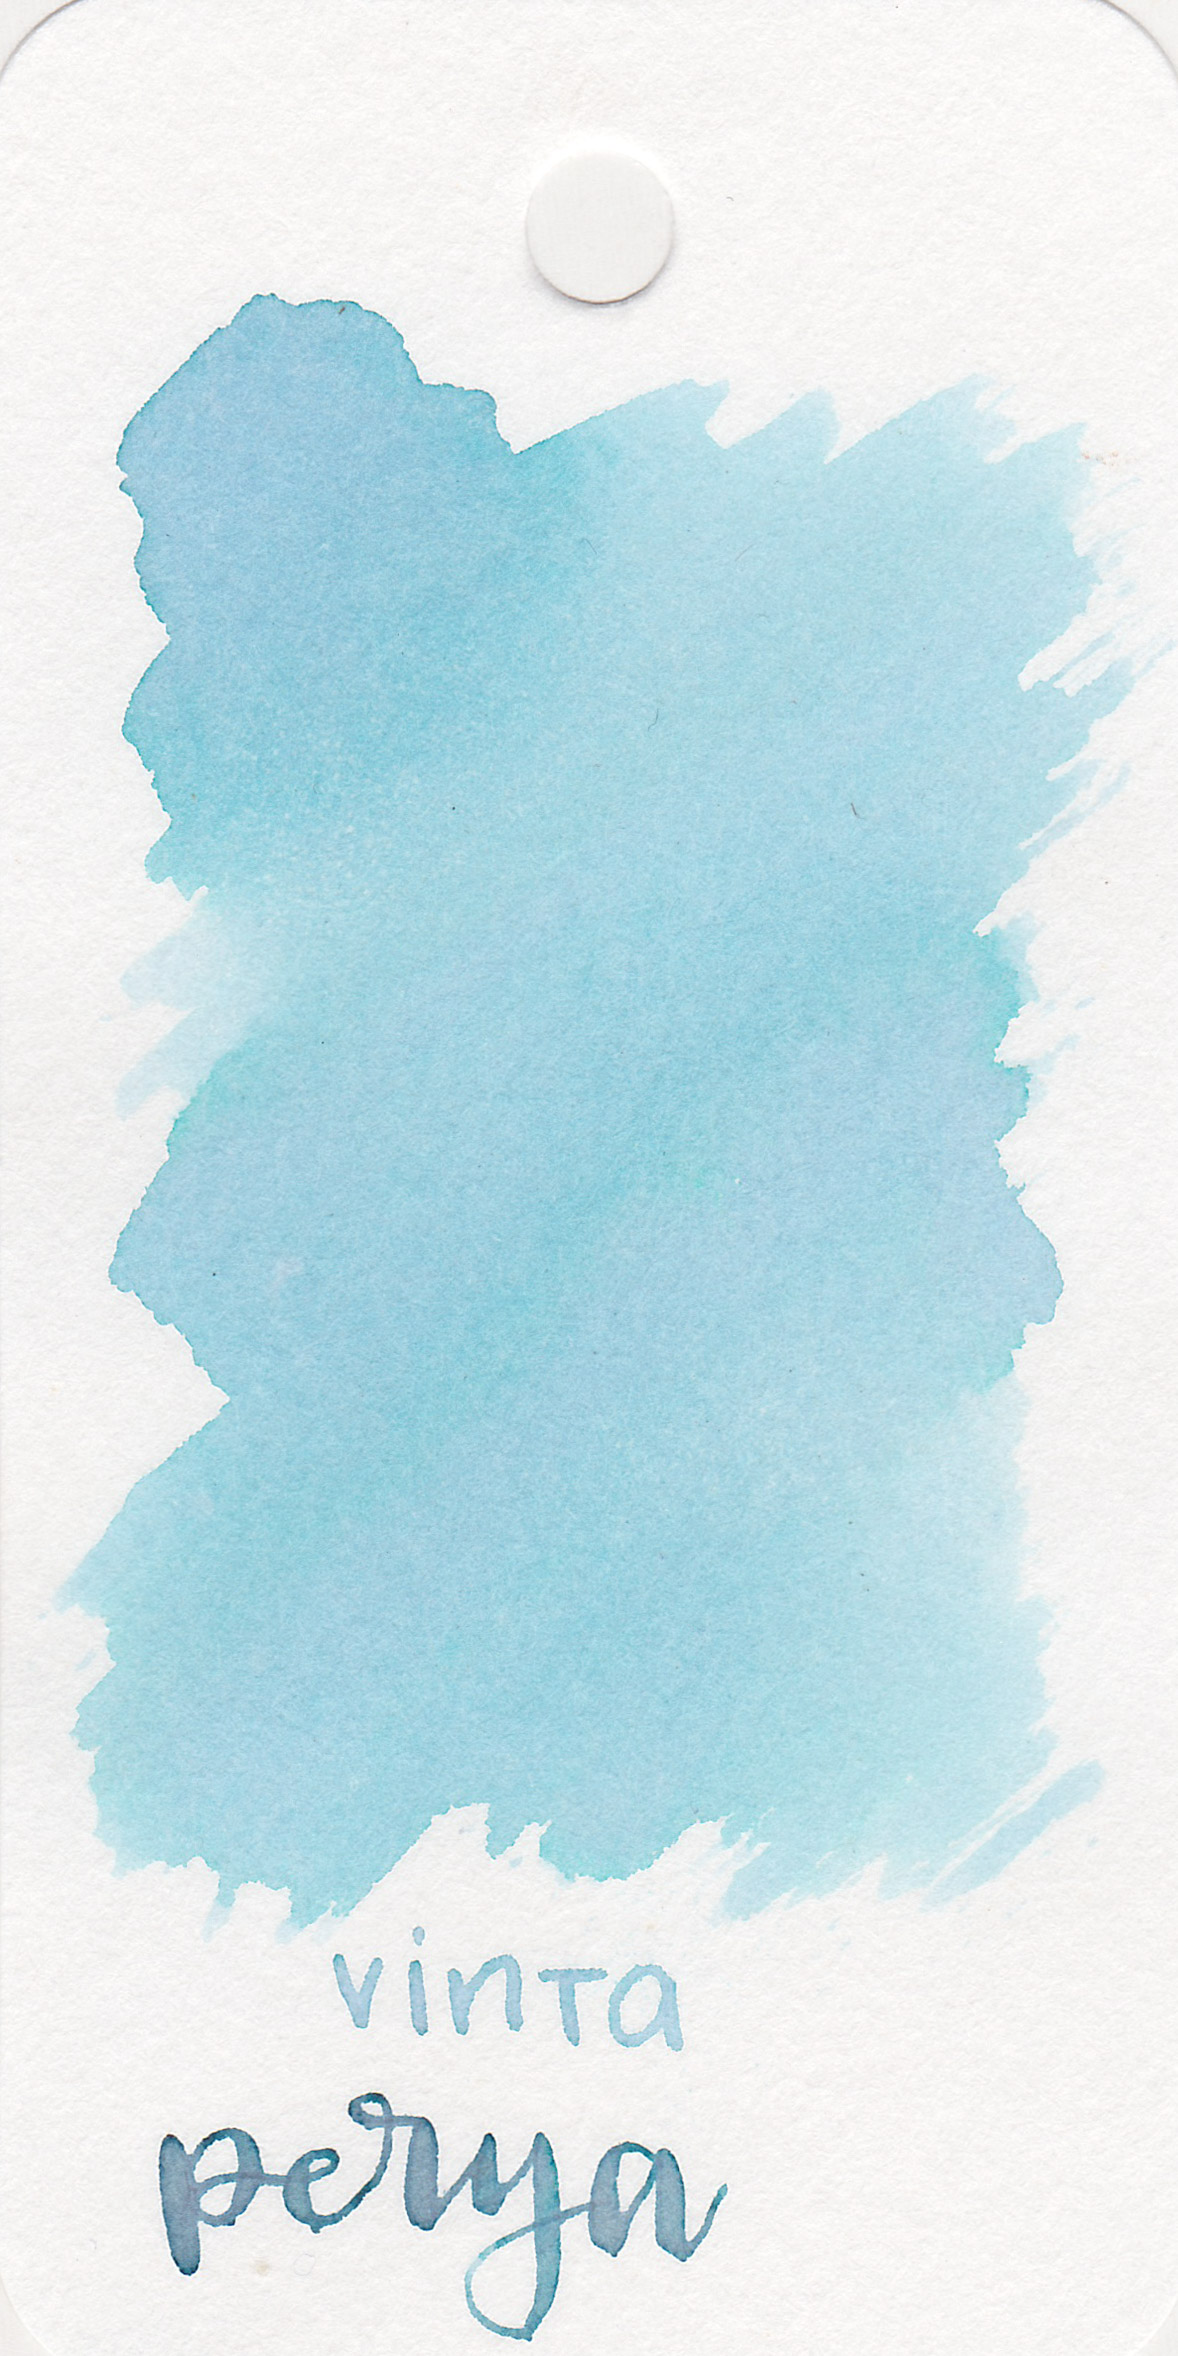 The color: - Perya is a light, almost baby blue. Depending on the paper, this ink shifts from blue to pink and green.